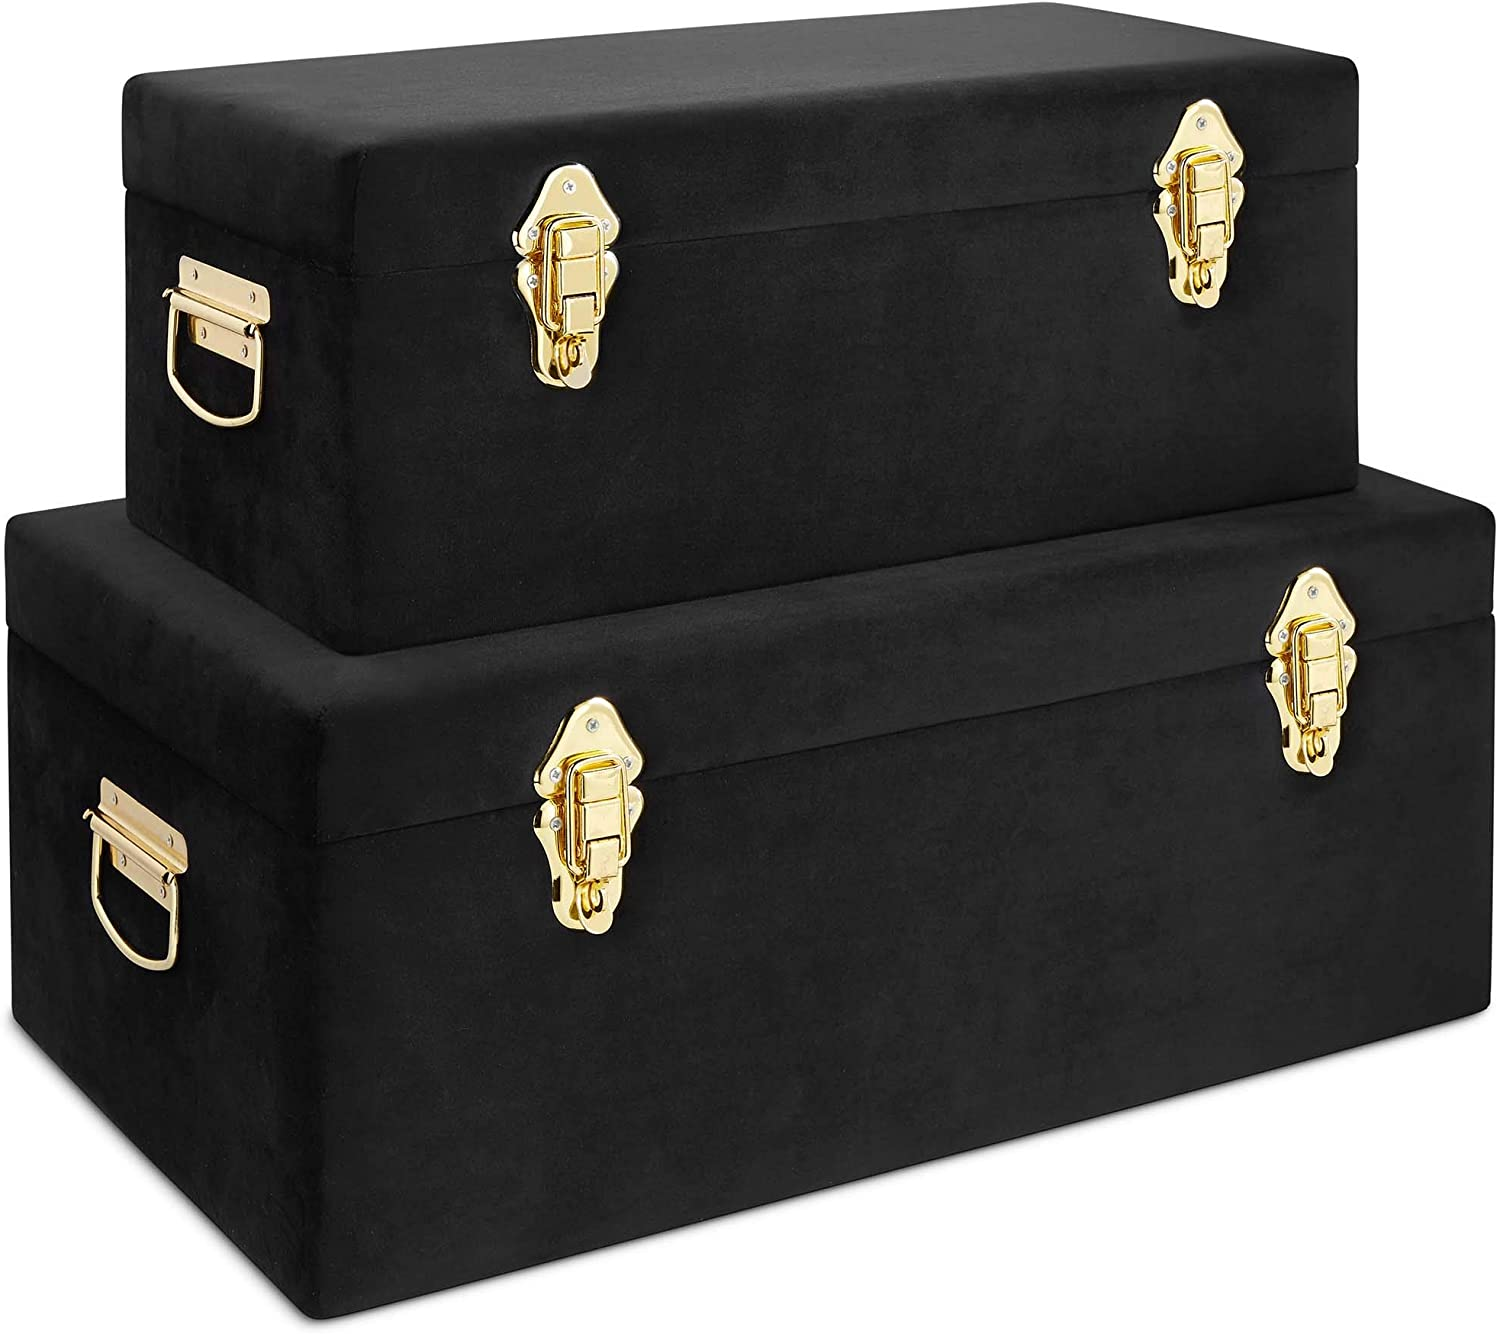 Beautify Black Velvet Decorative Storage Trunk Set with Brass Clasps - College Dorm and Bedroom Footlocker Trunks